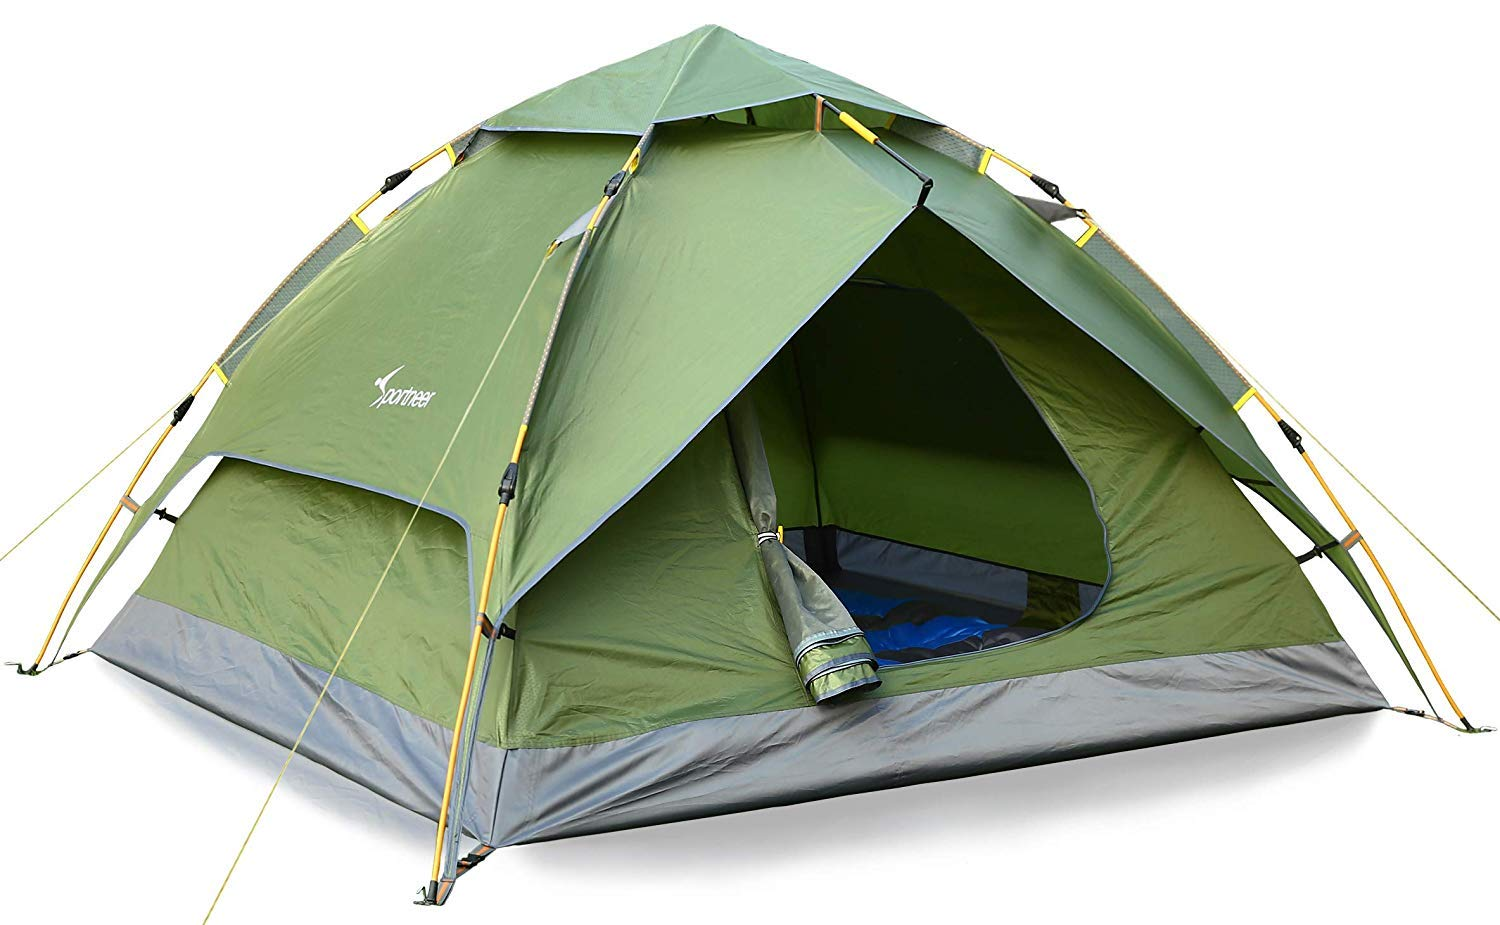 Sportneer Camping Tent 2-3 Person Automatic Instant Pop Up Waterproof Camping Hiking Travel Beach Tents for Family Groups by Sportneer